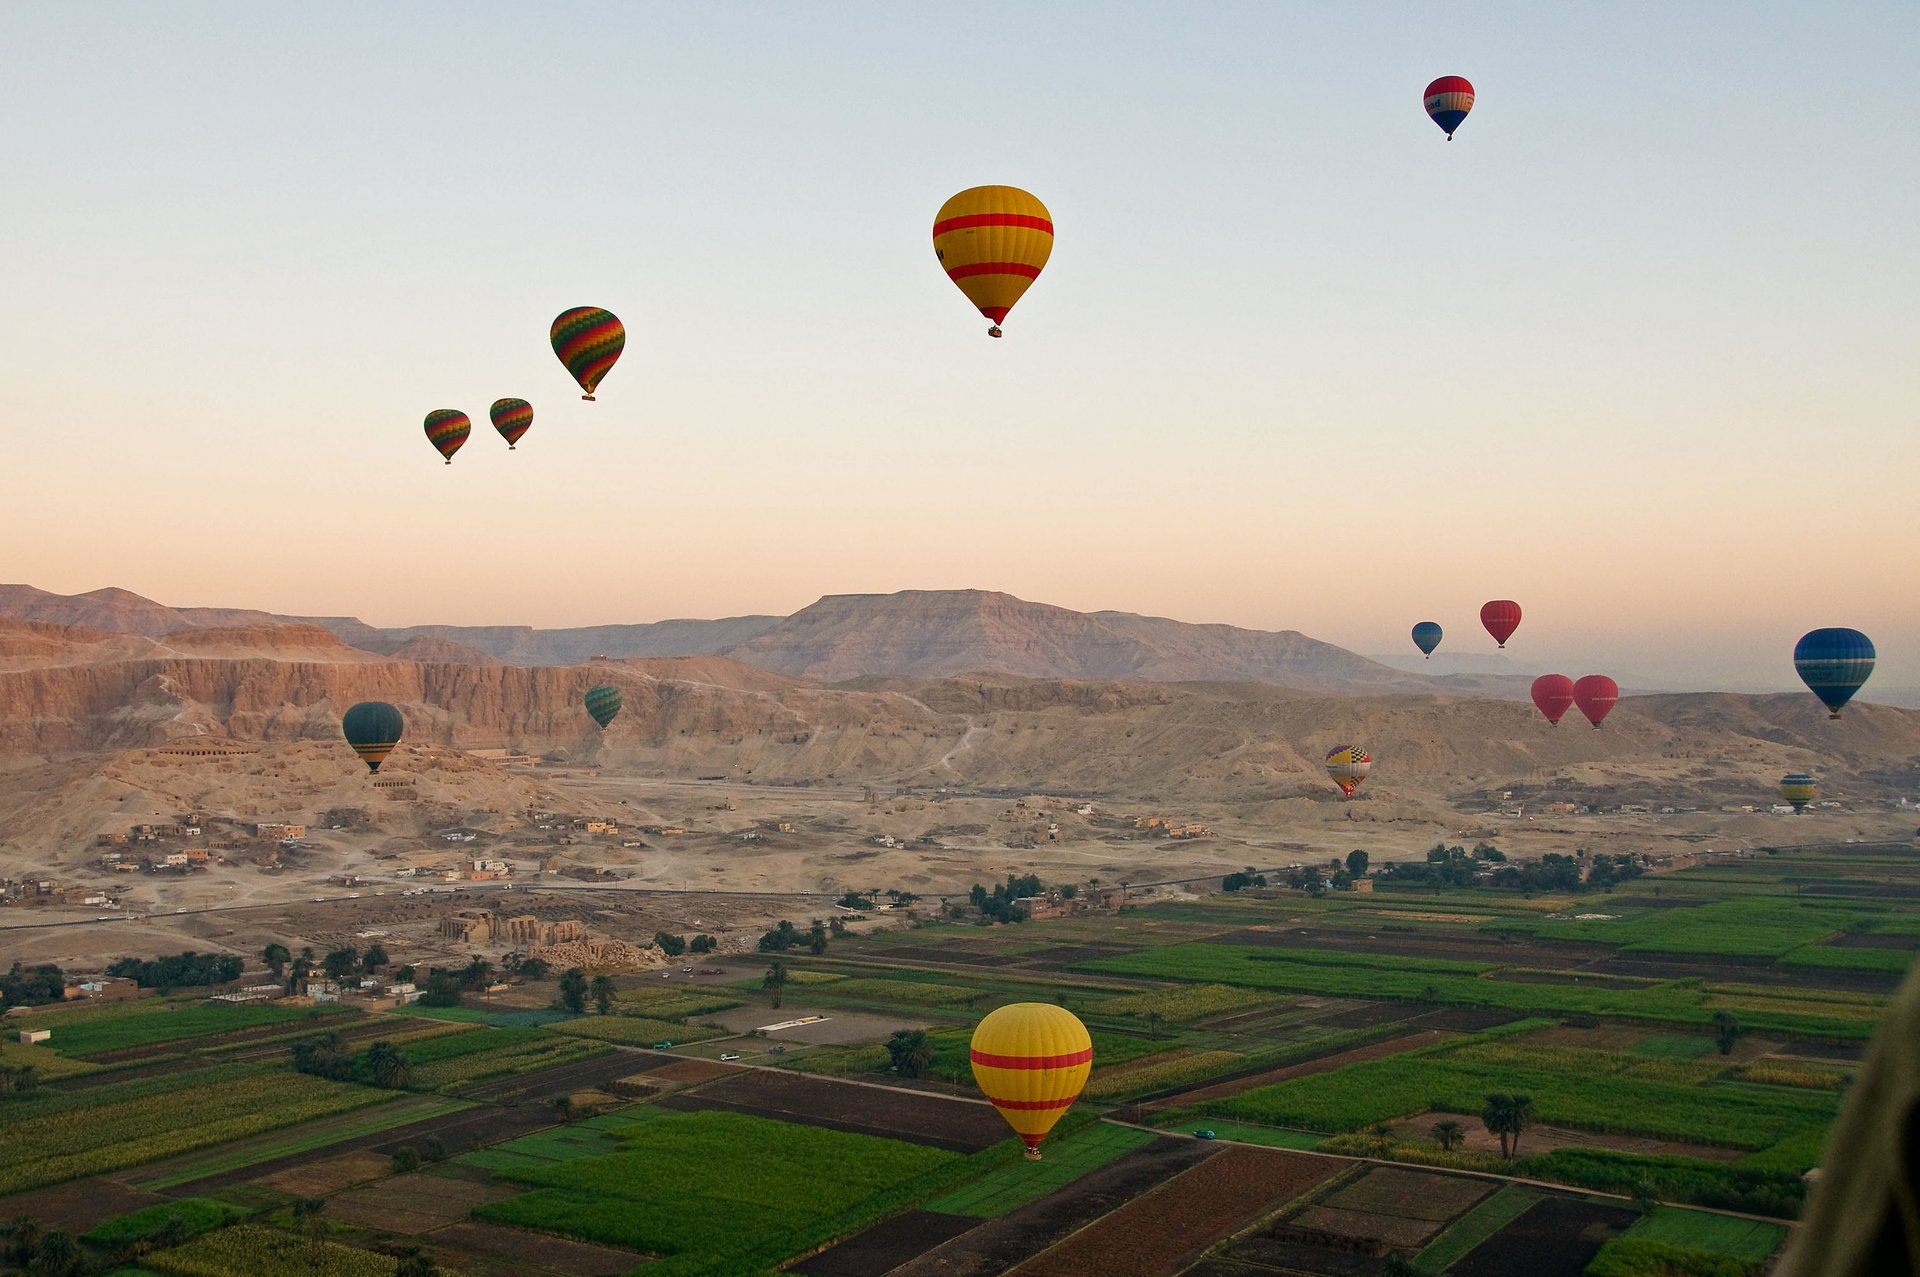 Hot Air Balloon Festival in Luxor in Egypt 2020 - Best Time